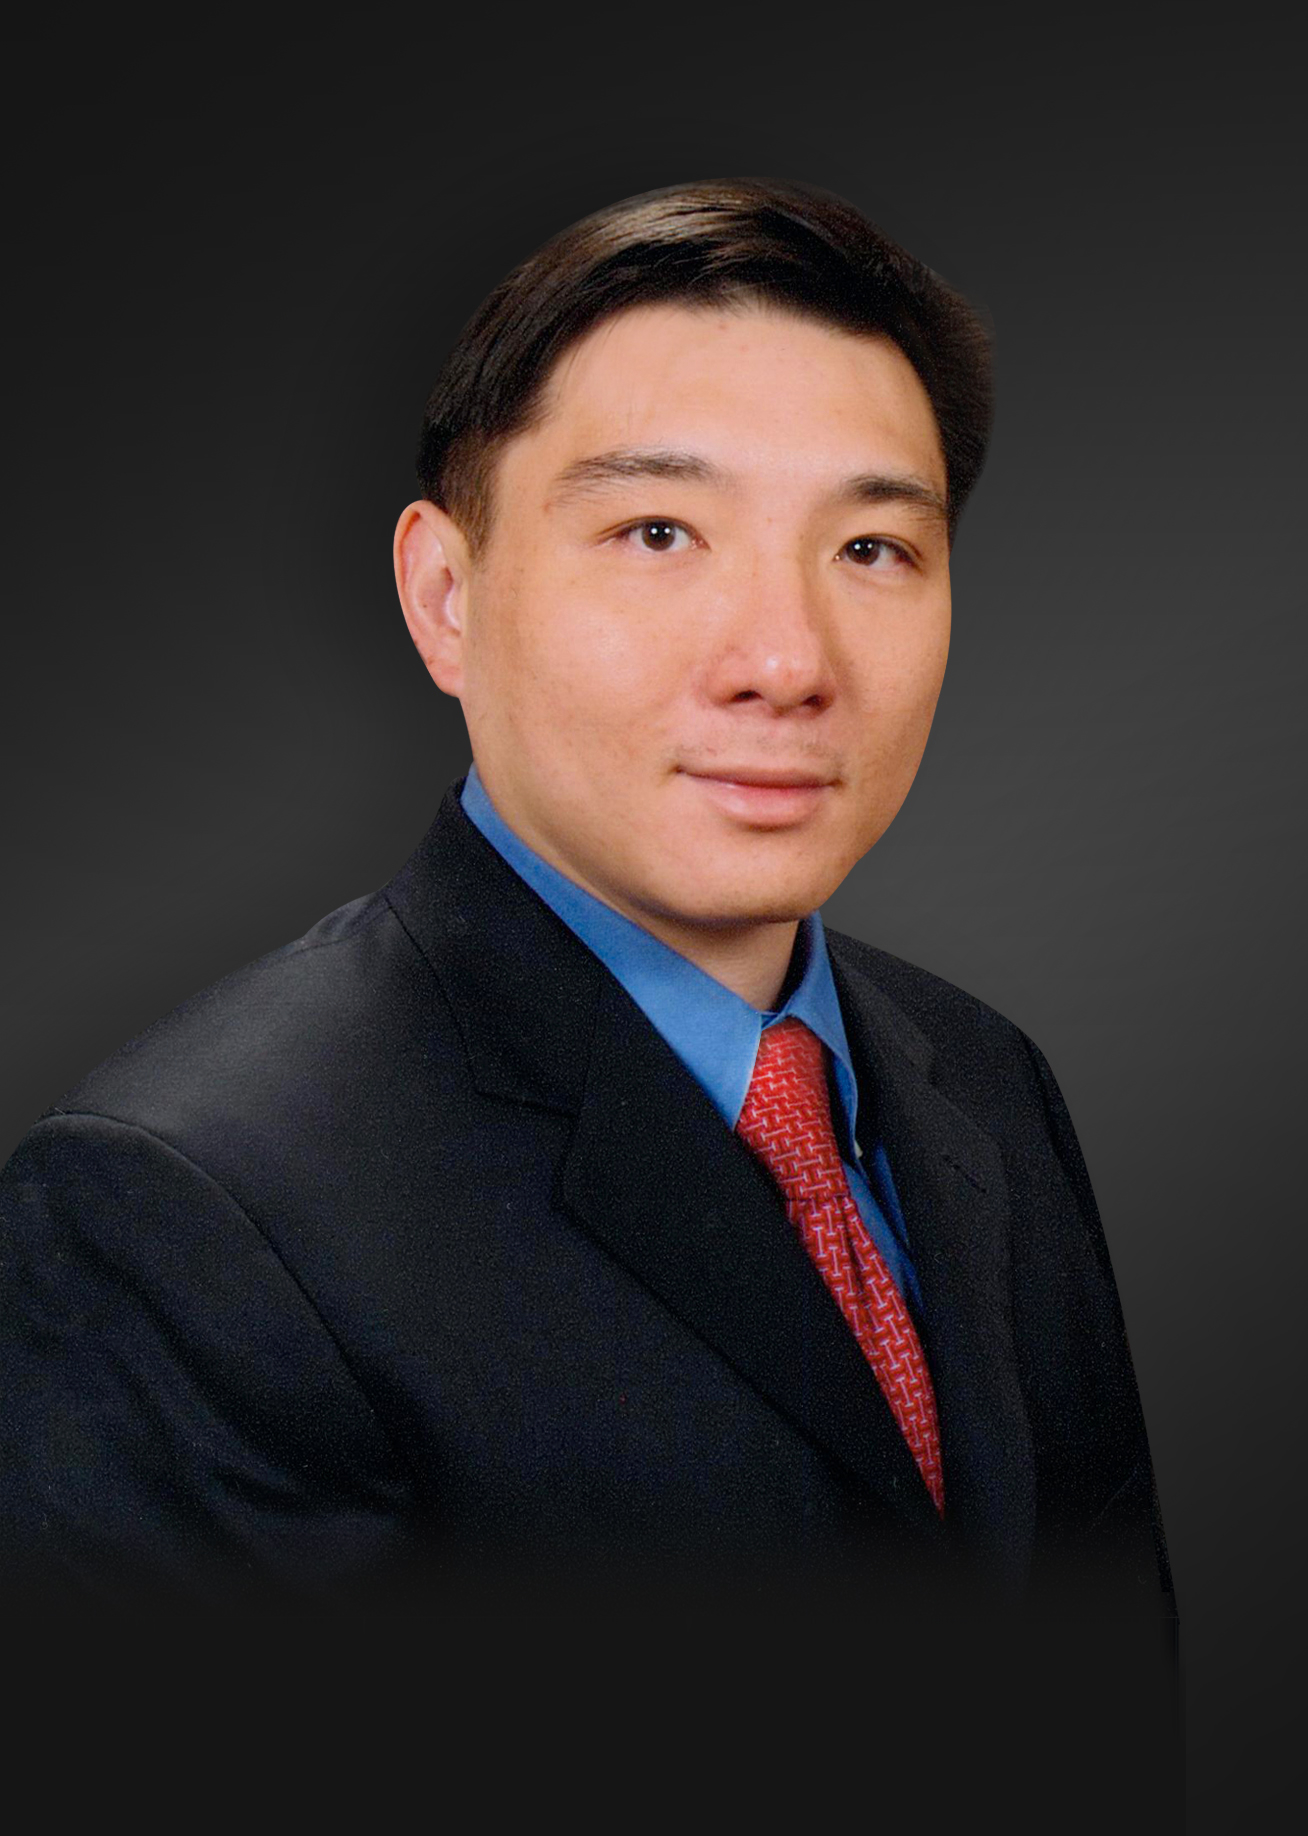 Vincent Wh Wang, Dds Ms